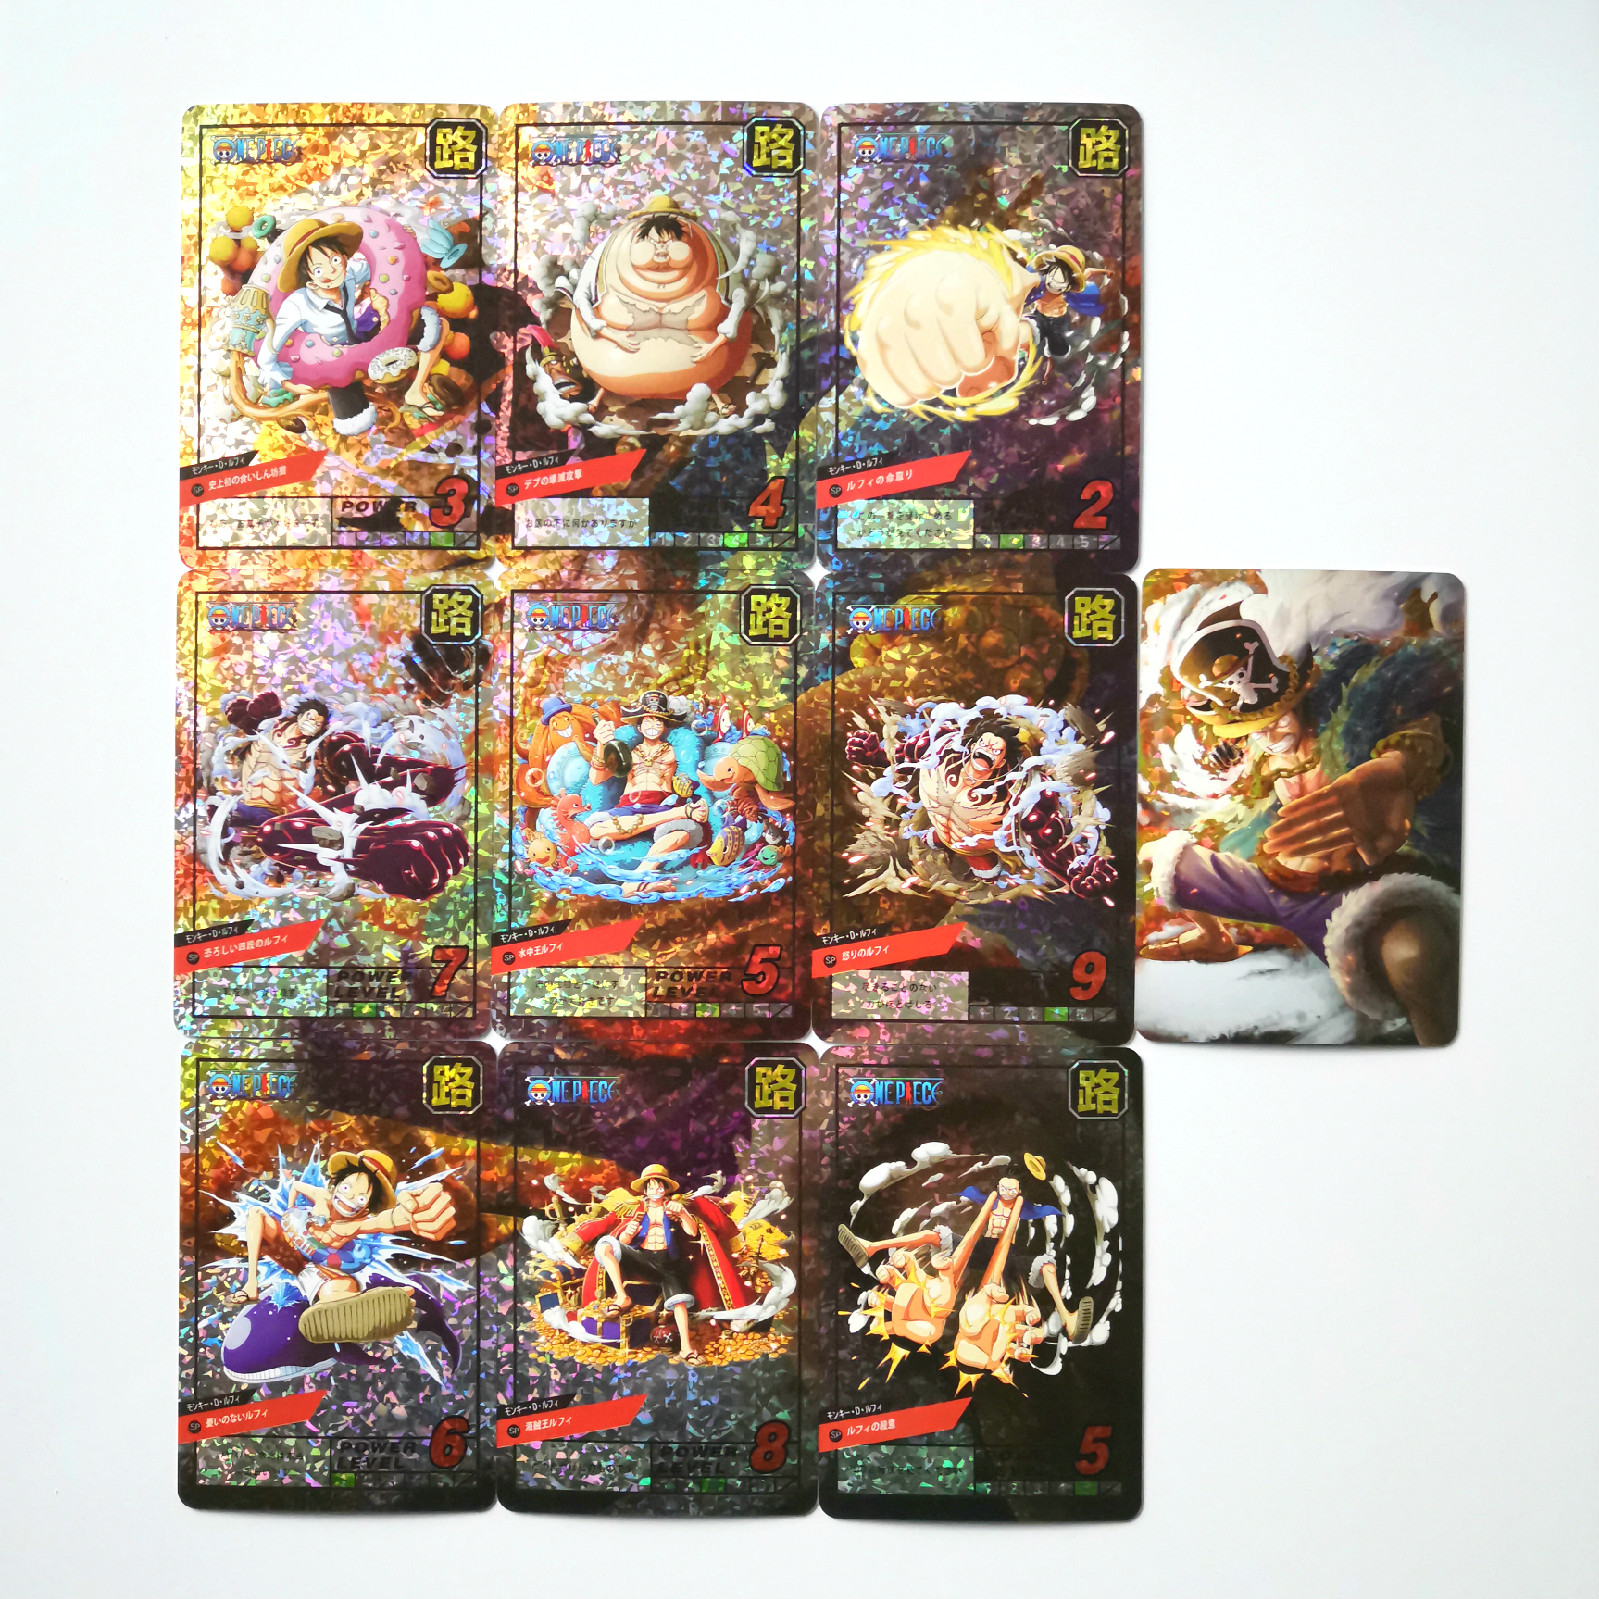 10pcs/set ONE PIECE Luffy Toys Hobbies Hobby Collectibles Game Collection Anime Cards